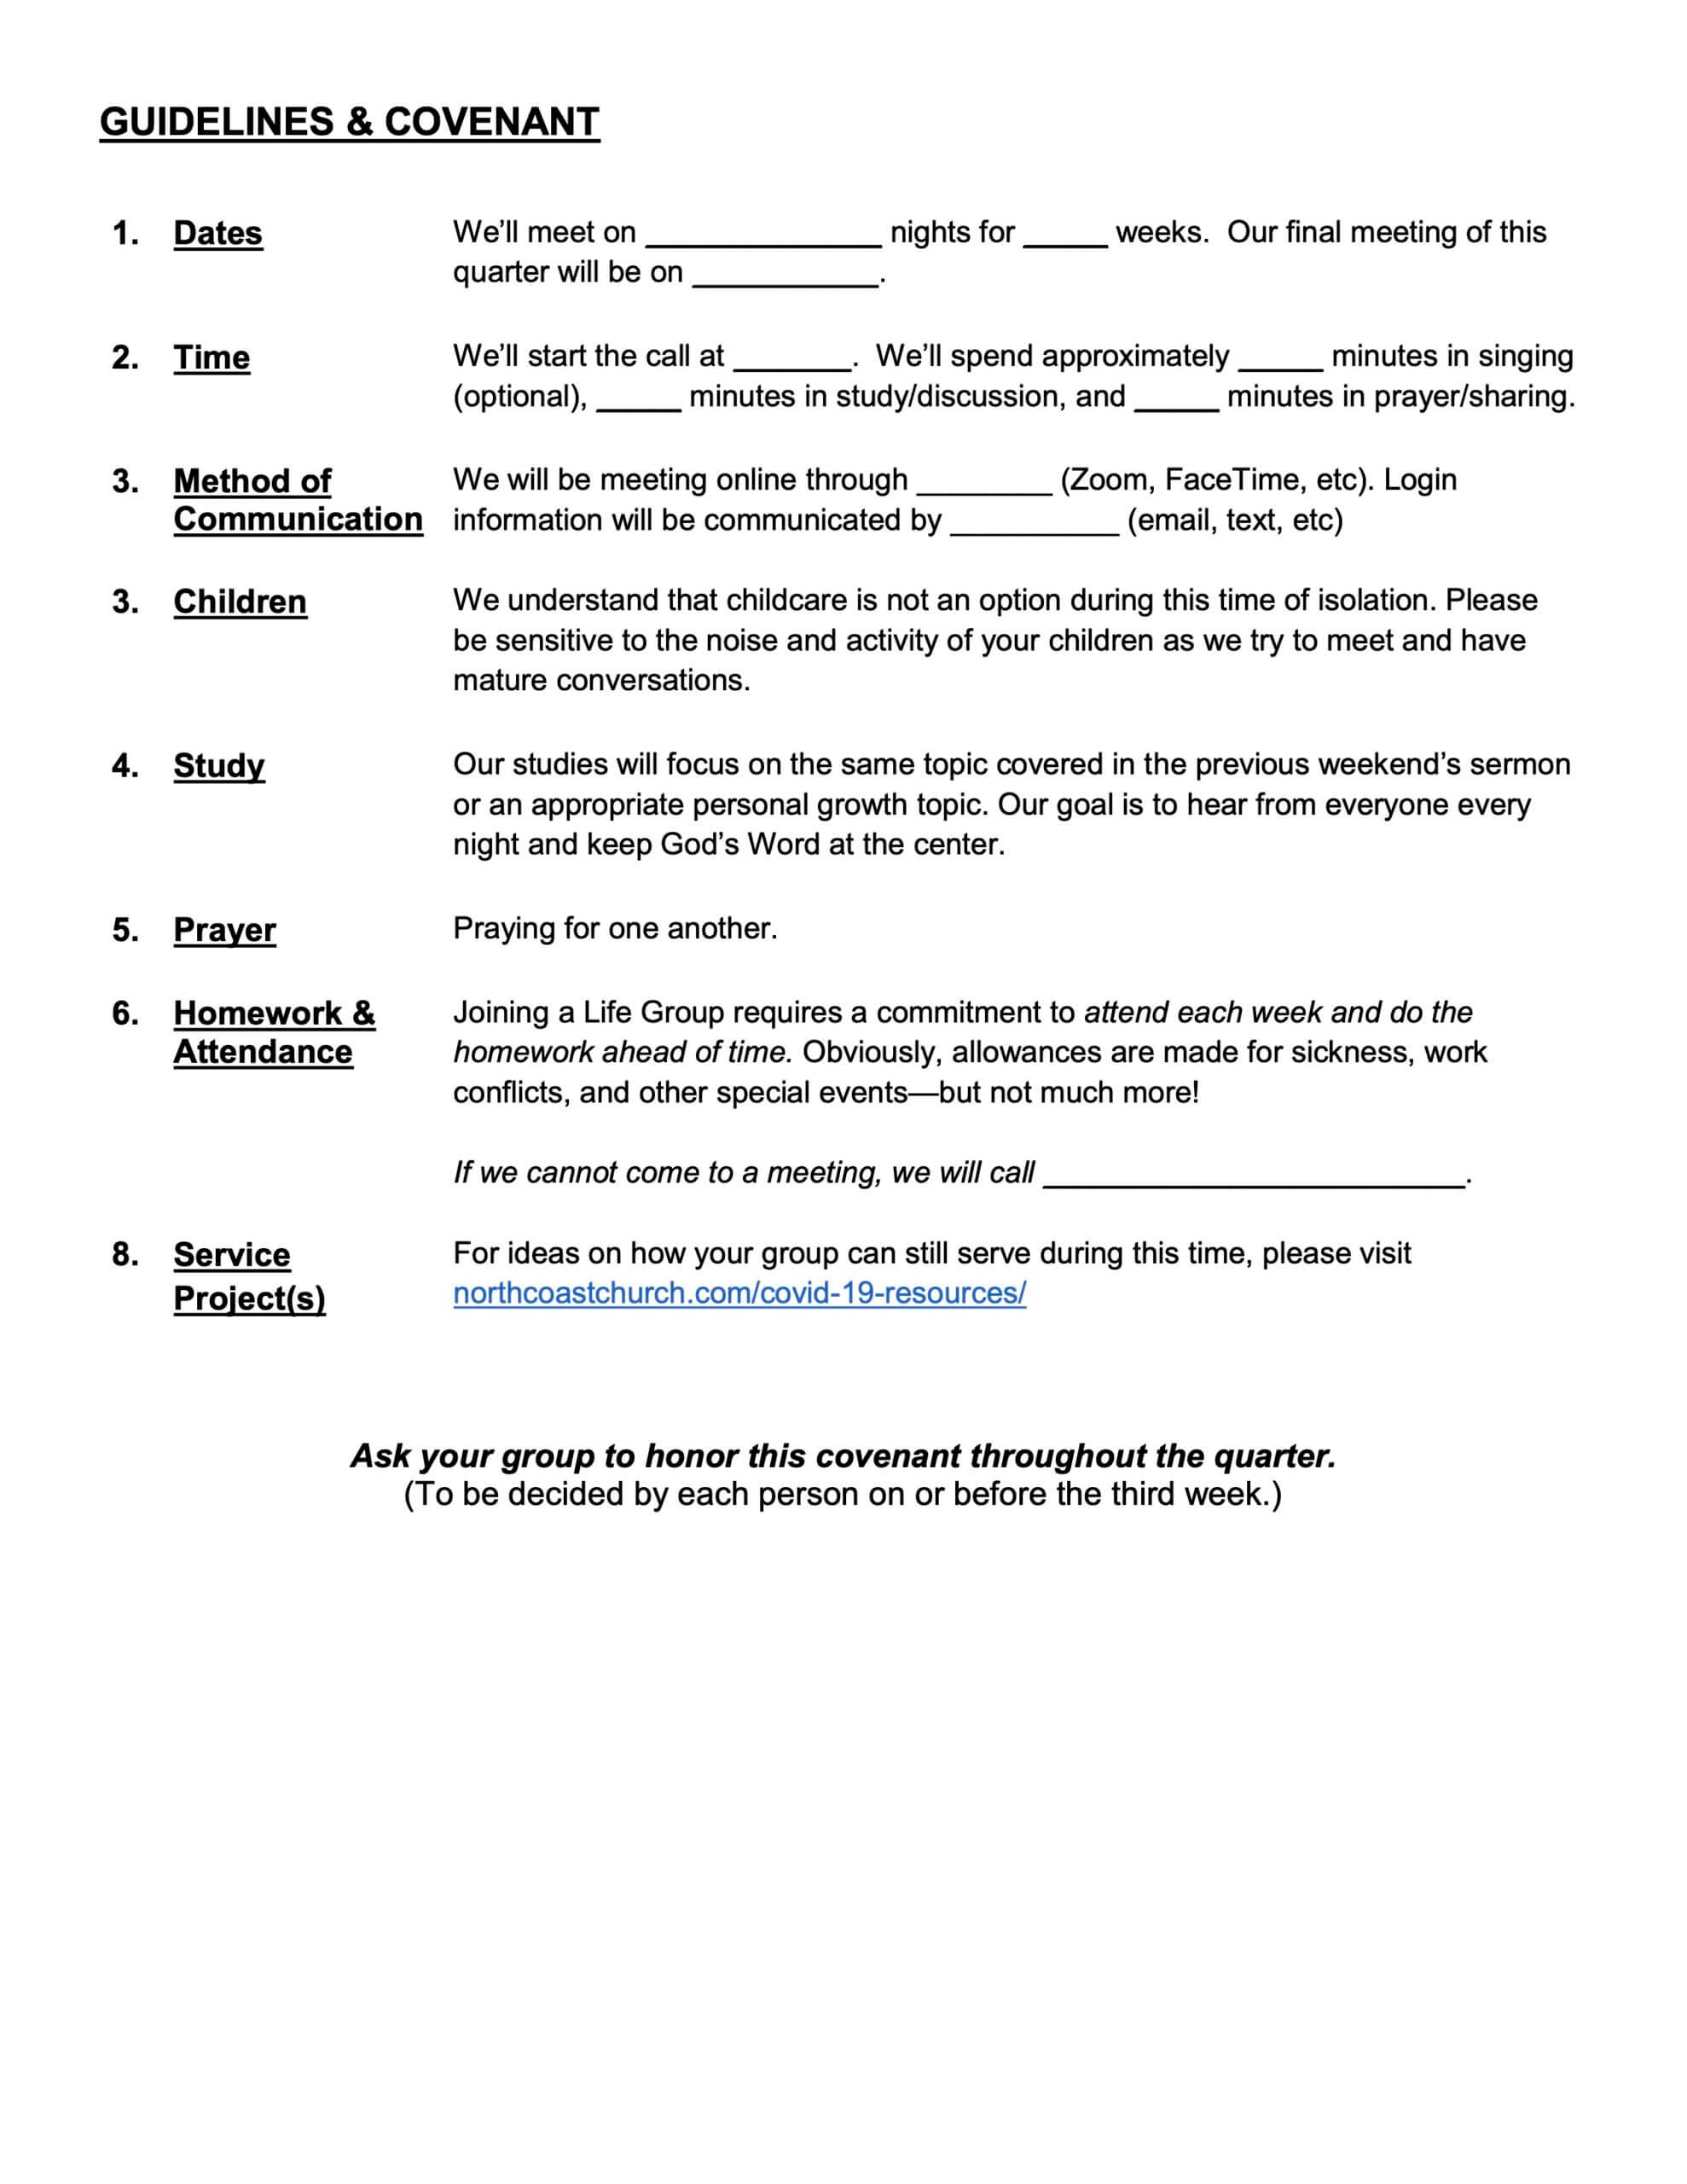 Life Group Covenant, North Coast Church, Page 2